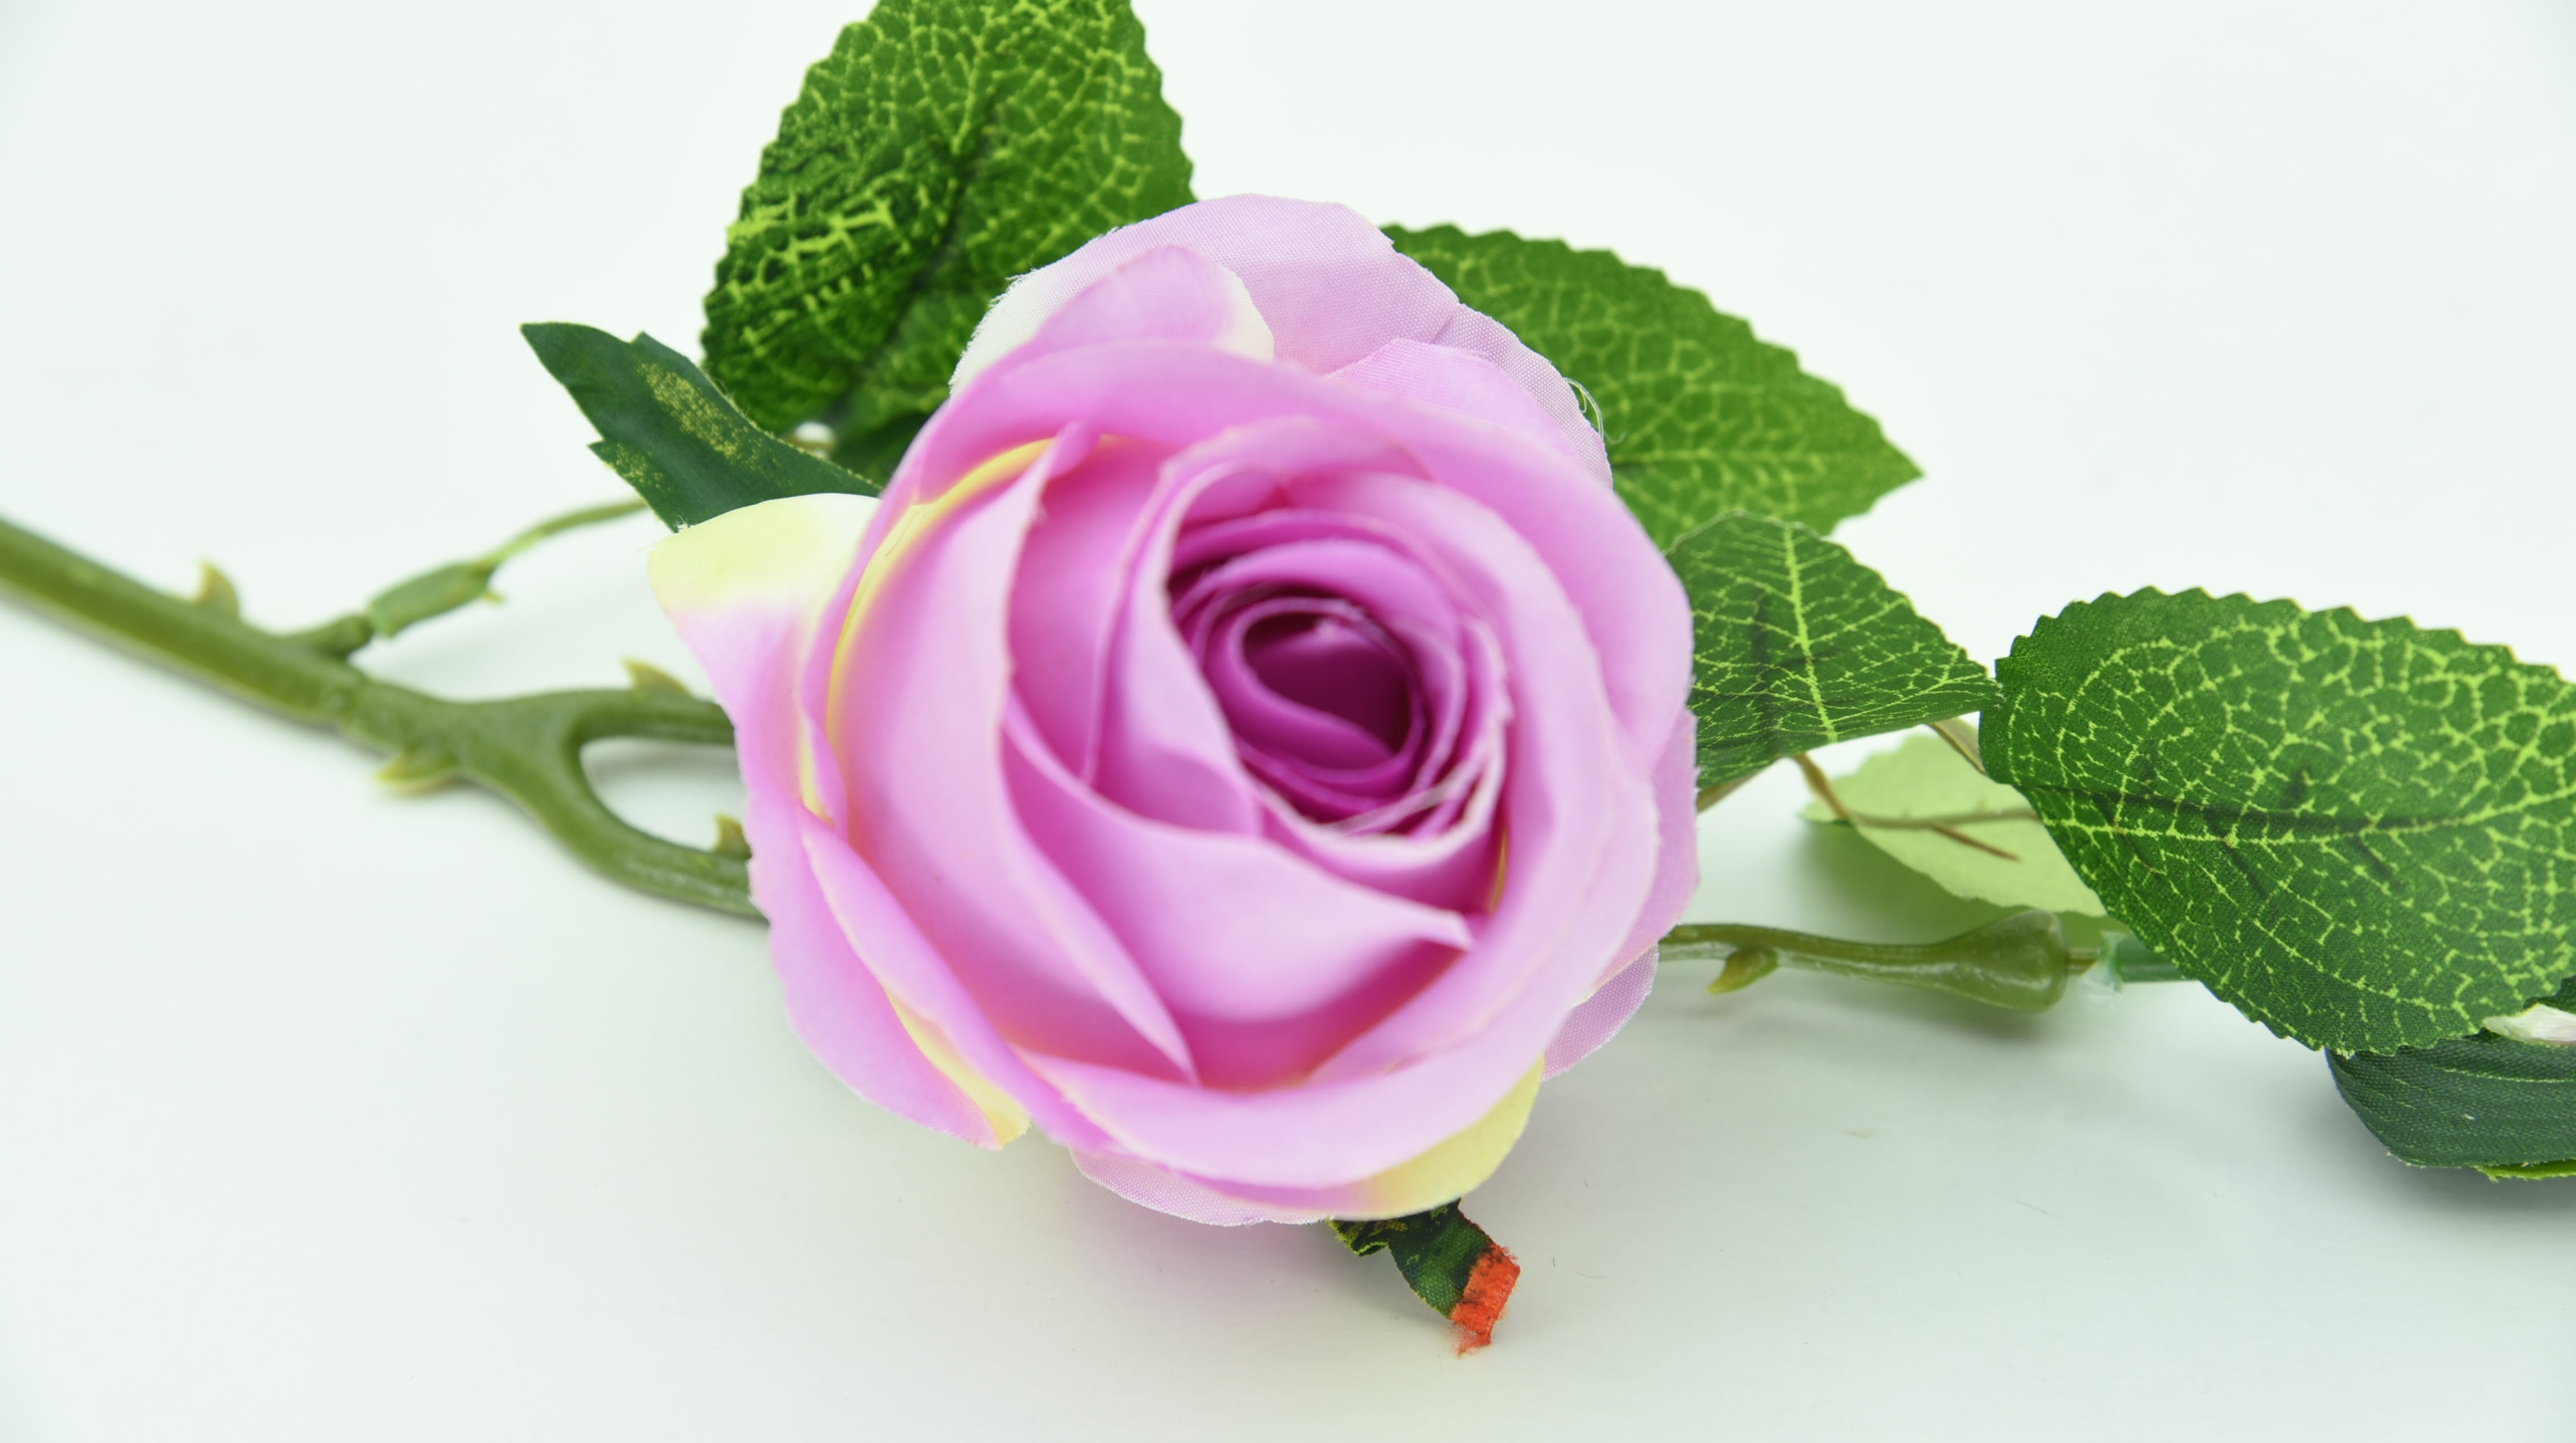 Free stock photo of artificial flowers, beautiful flowers, pink flower, purpel rose